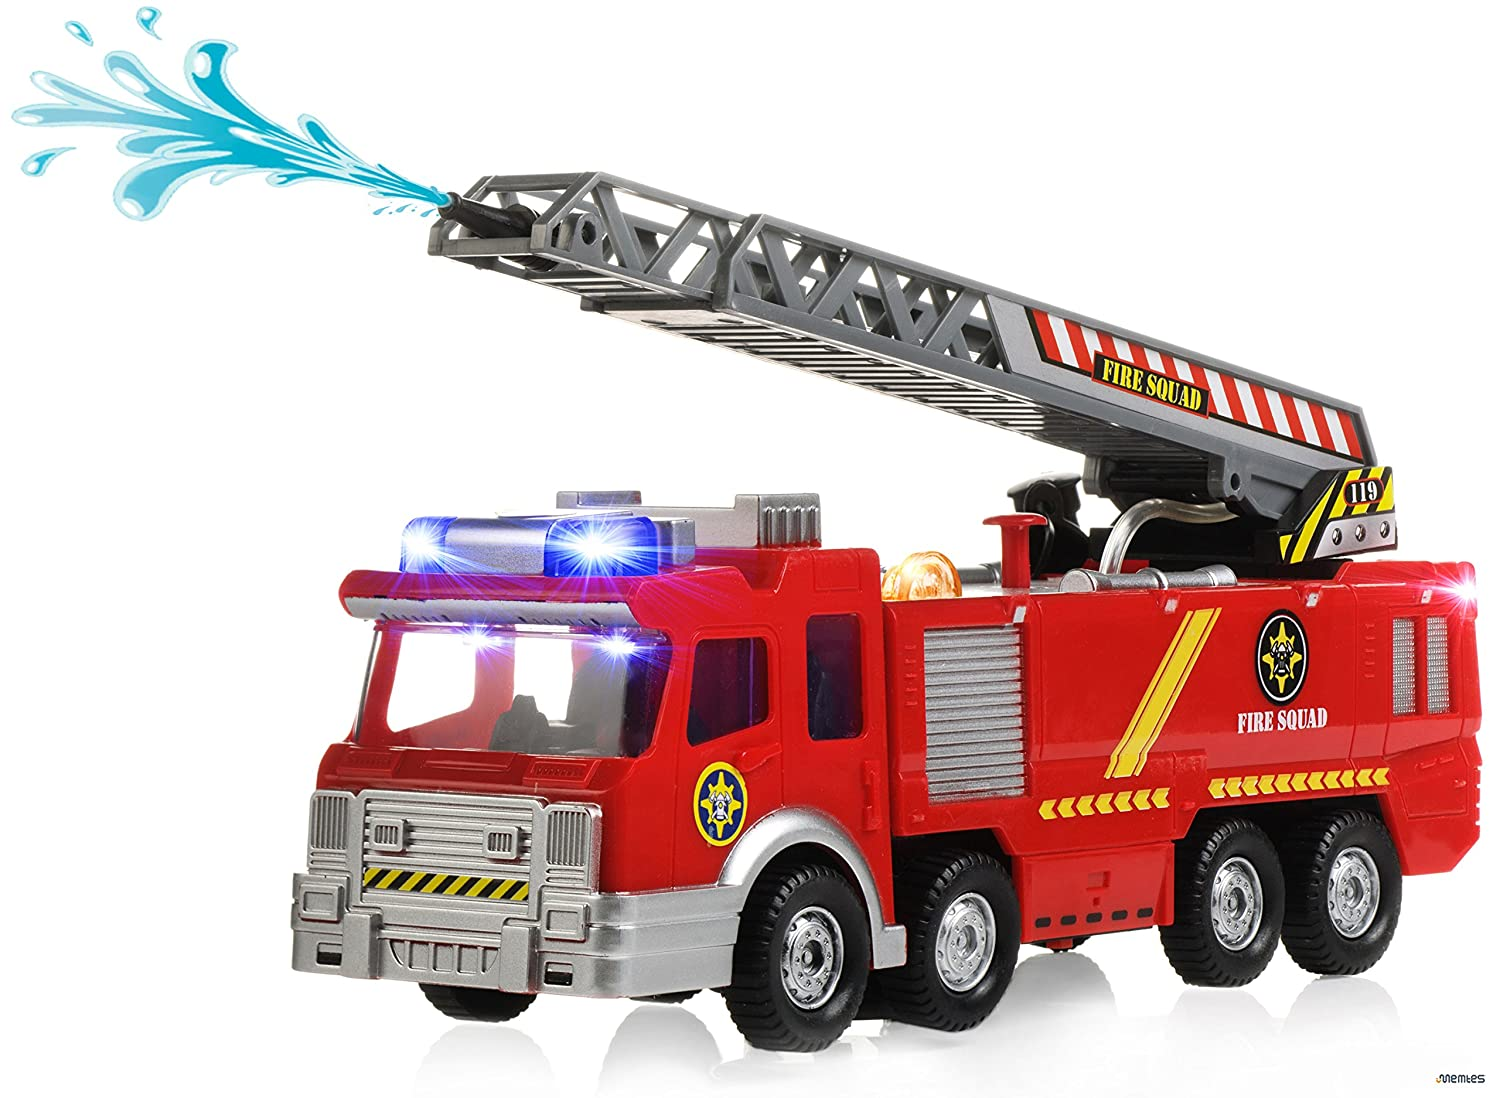 Memtes Electric Fire Truck Toy With Lights And Sirens Sounds Extending Ladder And Water Pump Hose To Shoot Water Bump And Go Action